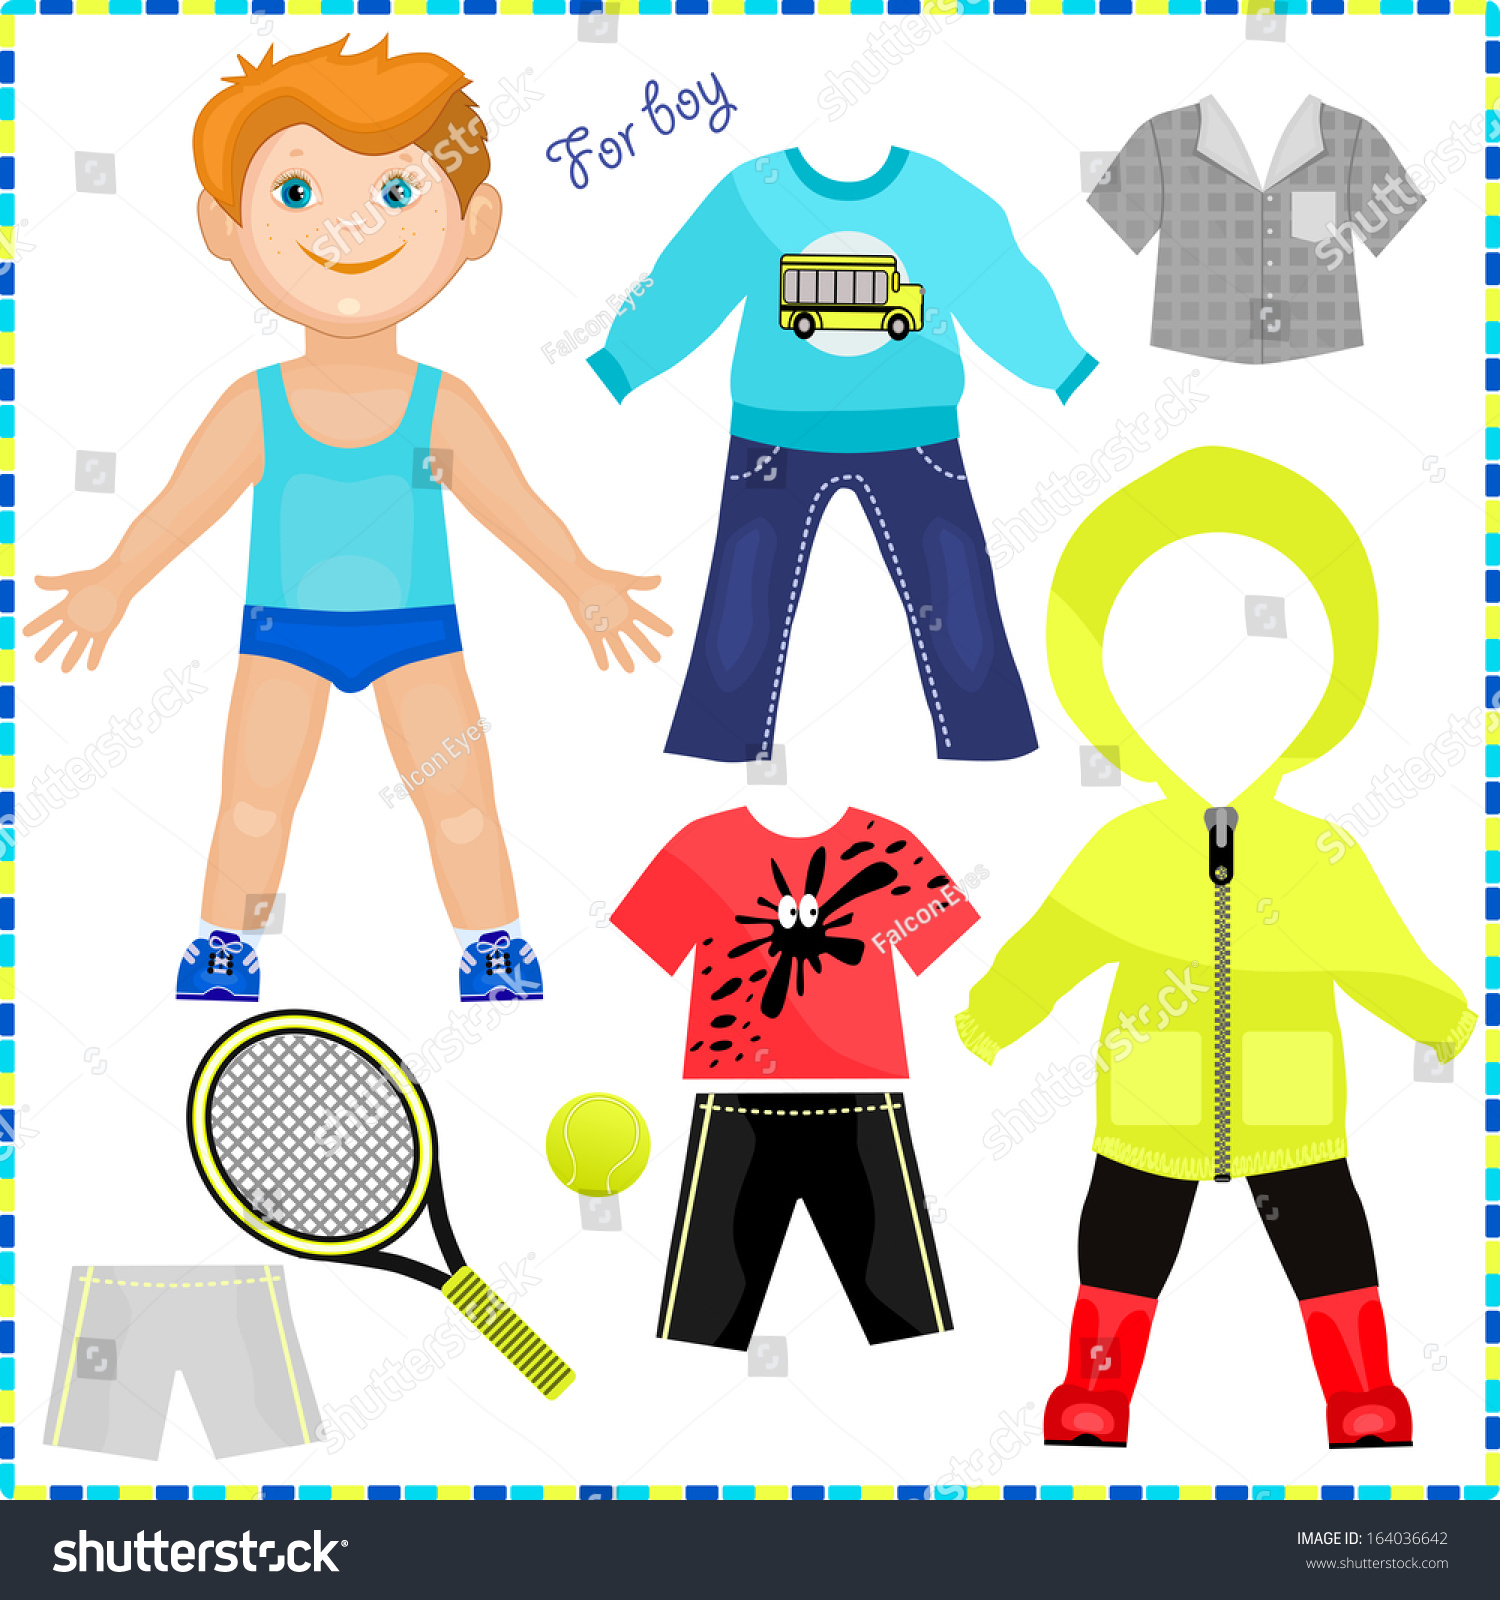 Paperdoll Template For Tennis Shoes